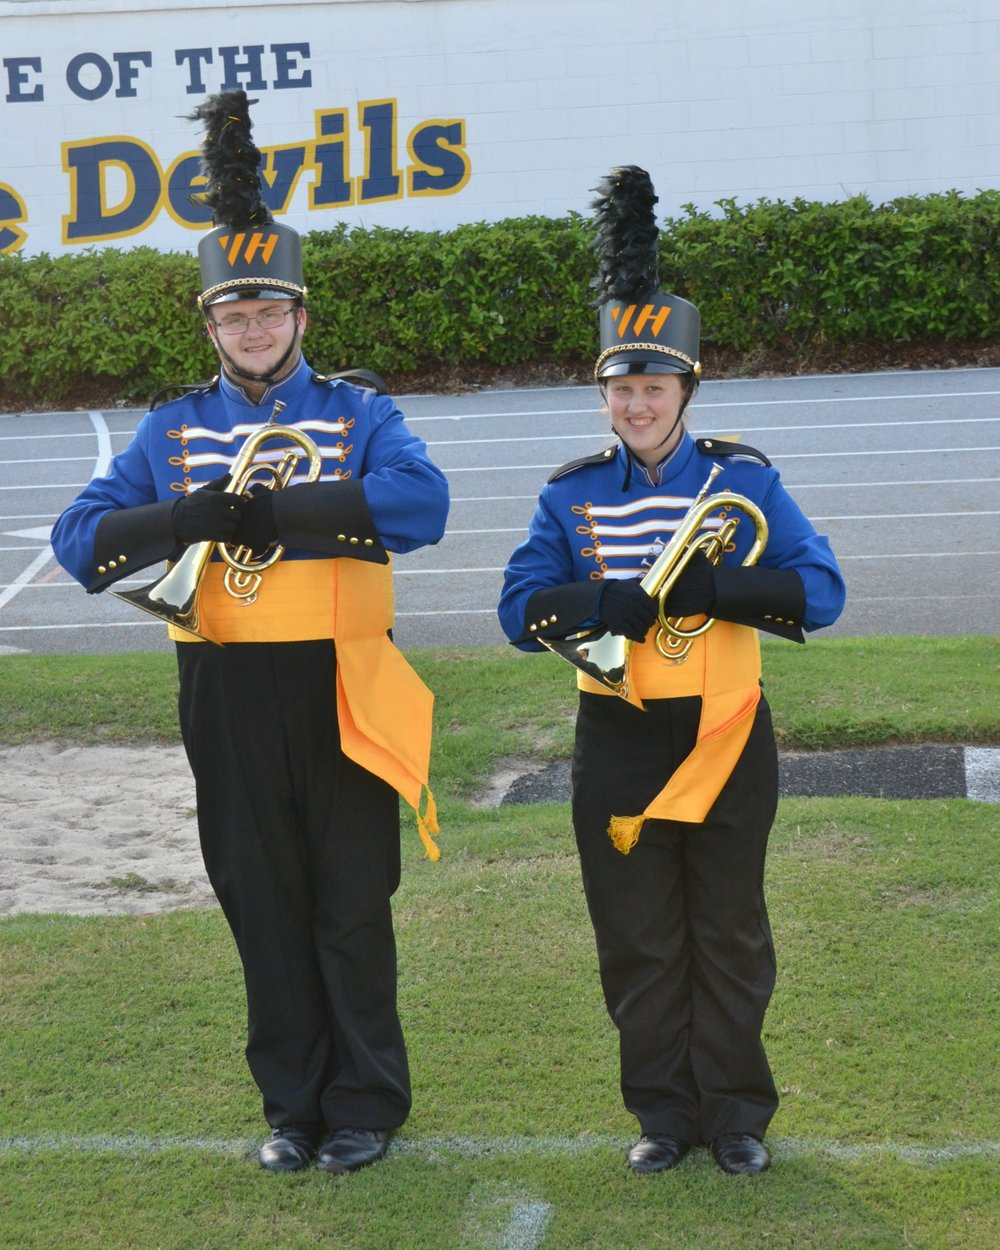 Band Photos 16-17 009.jpg